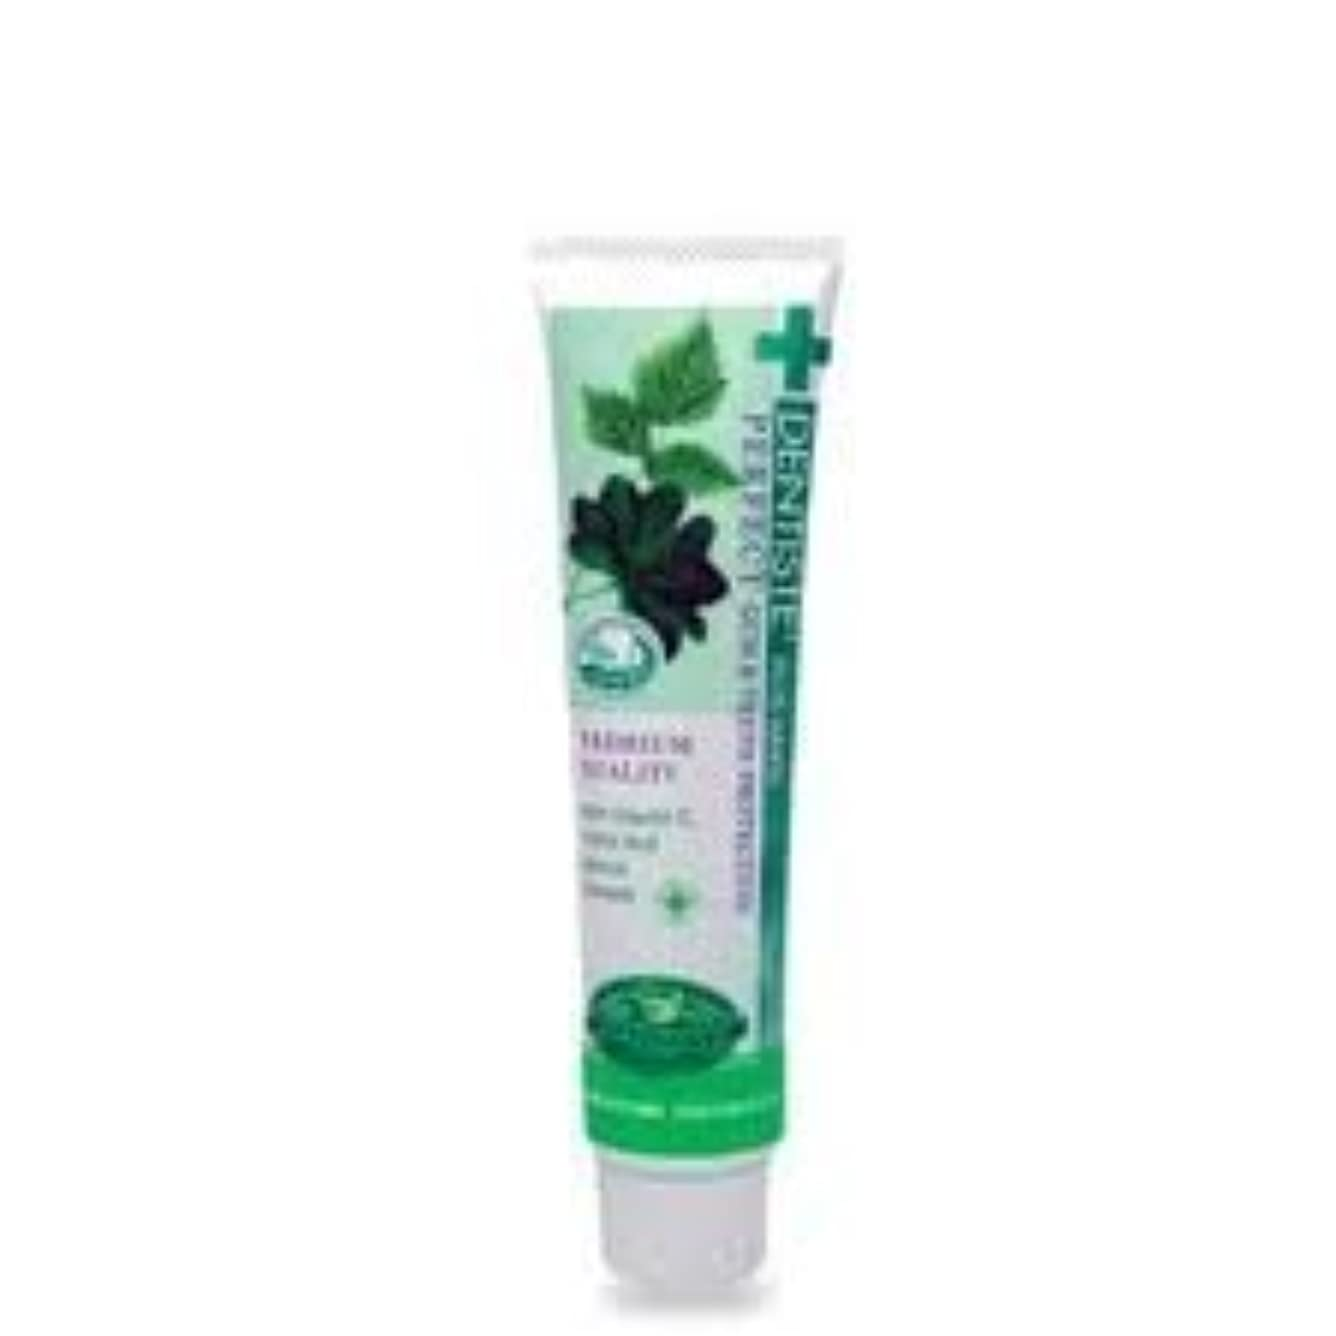 好み寝室を掃除する大きなスケールで見るとDentiste Night Time Active Whitening Toothpaste 100 G Thailand Product by Dentiste